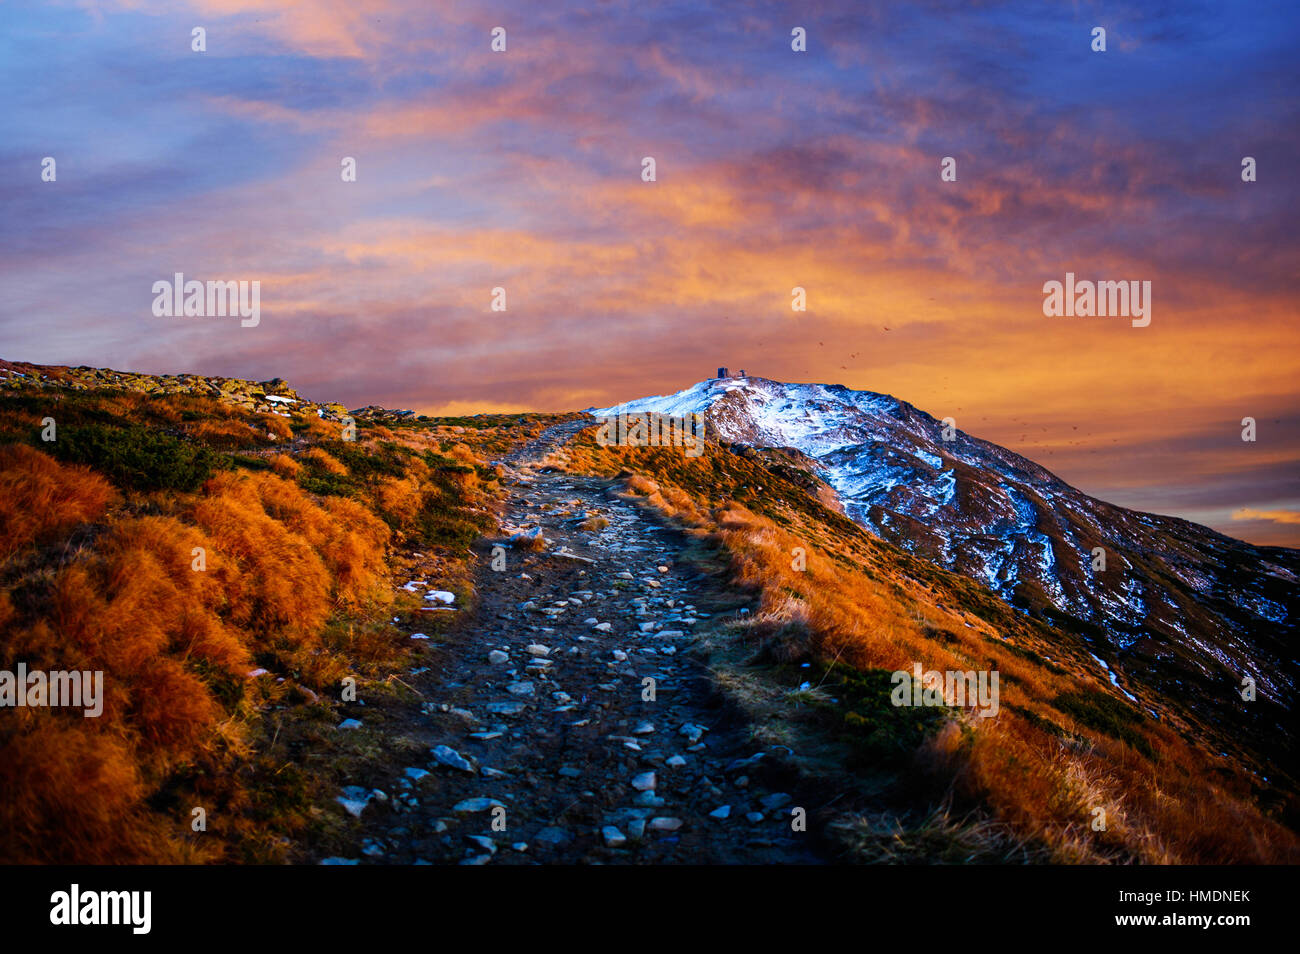 Fantastic sunset in the mountains of Ukraine - Stock Image